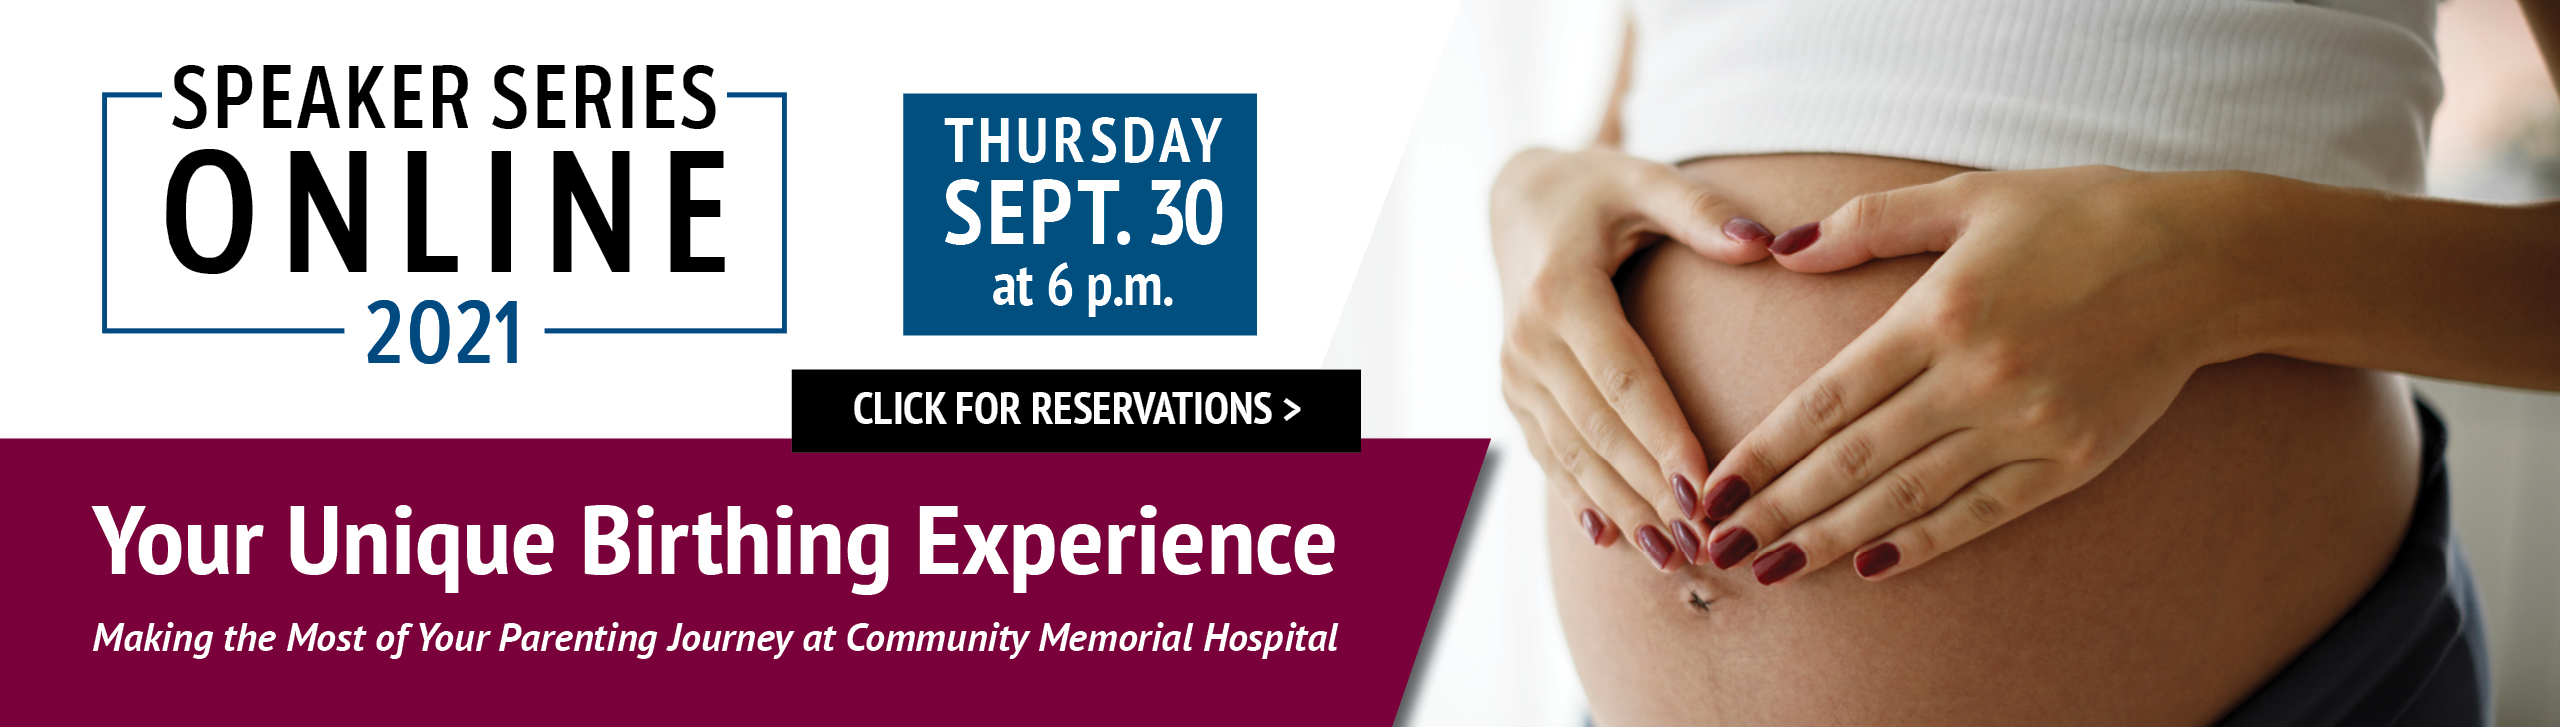 Your Unique Birthing Experience: Making the Most of Your Parenting Journey at Community Memorial Hospital Speaker Series Event